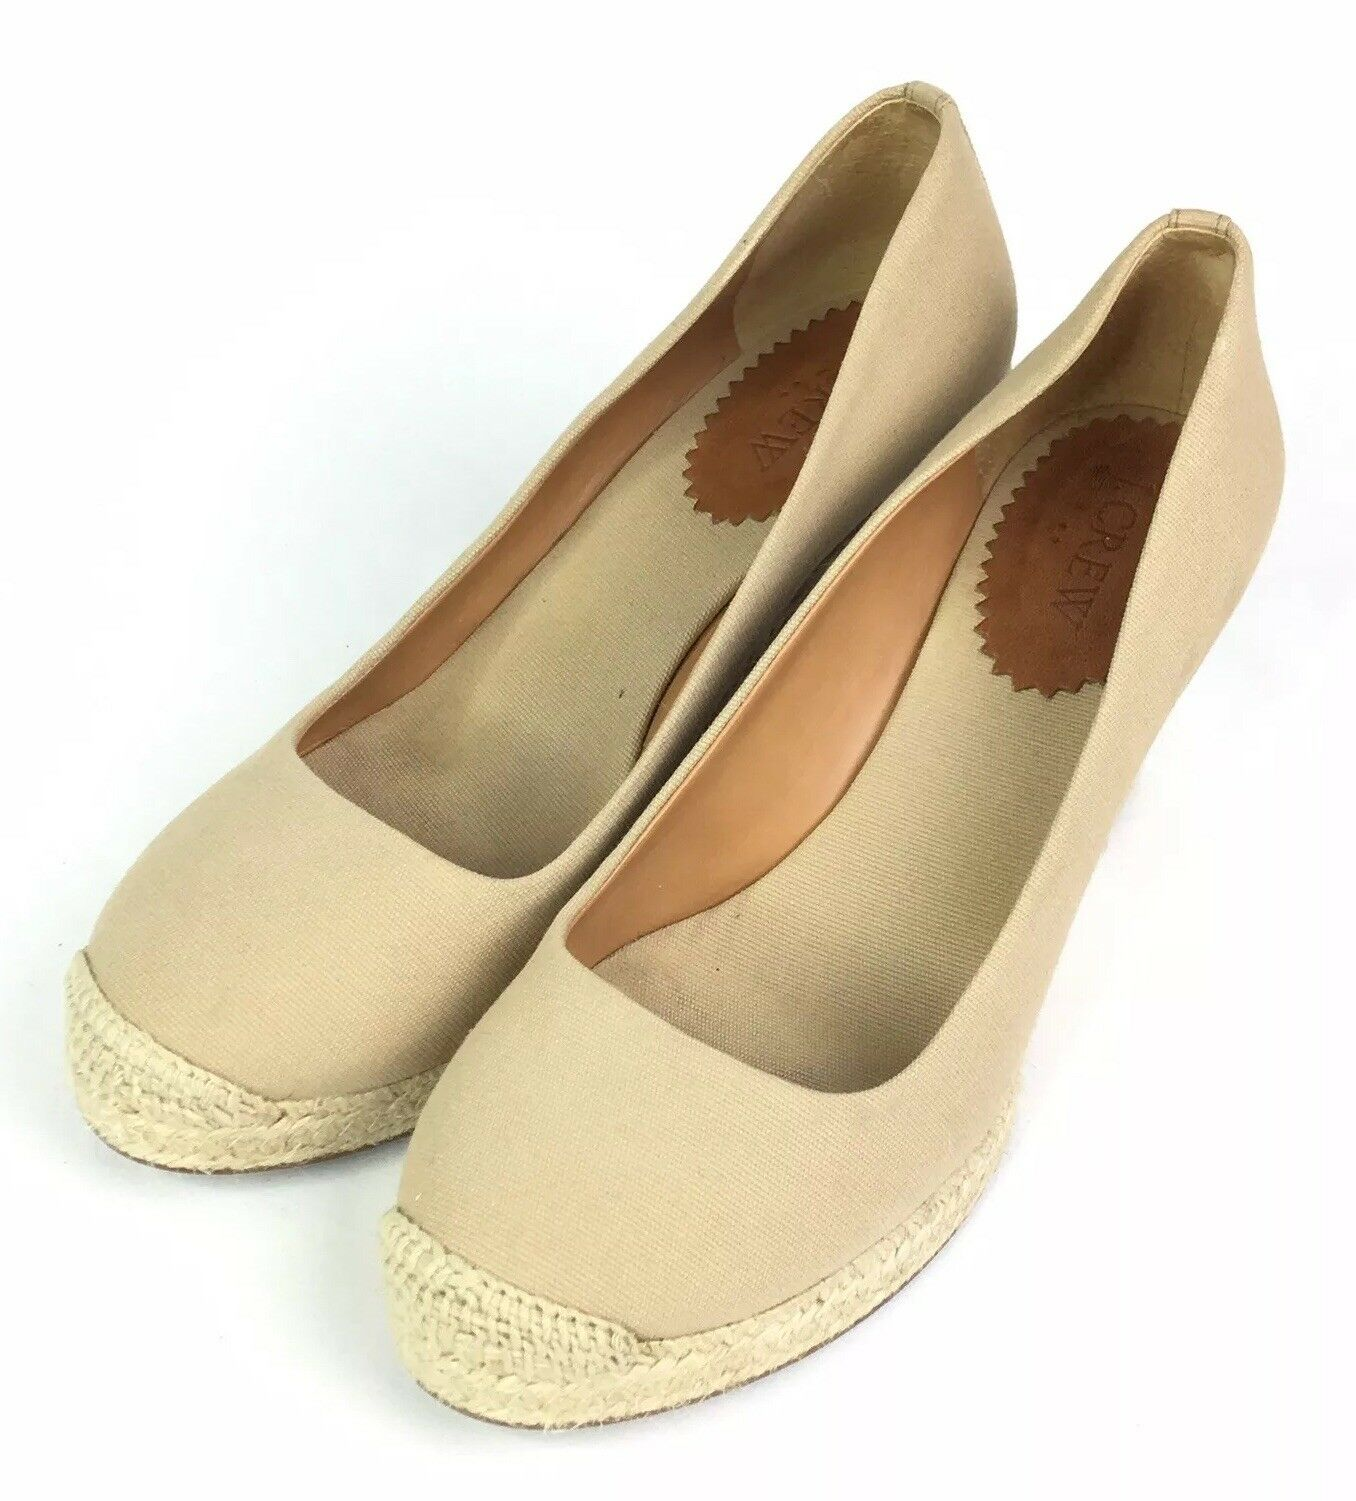 J Crew Factory Flax Beige Canvas Espadrille Wedges Slip On shoes Womens Size 8.5